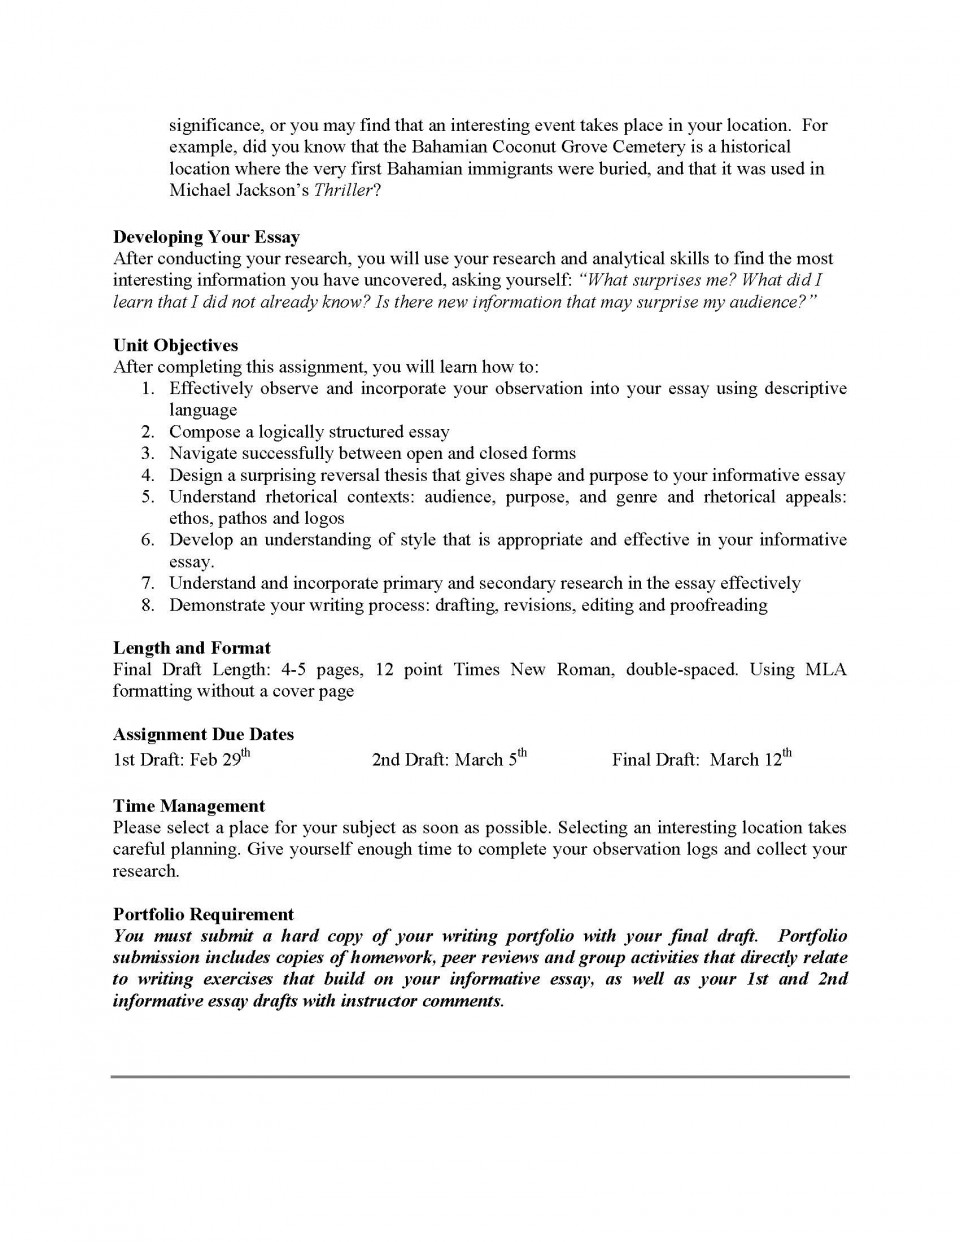 014 Informative Essay Unit Assignment Page 2 Dreaded Prompts 5th Grade 9th Graphic Organizer 960